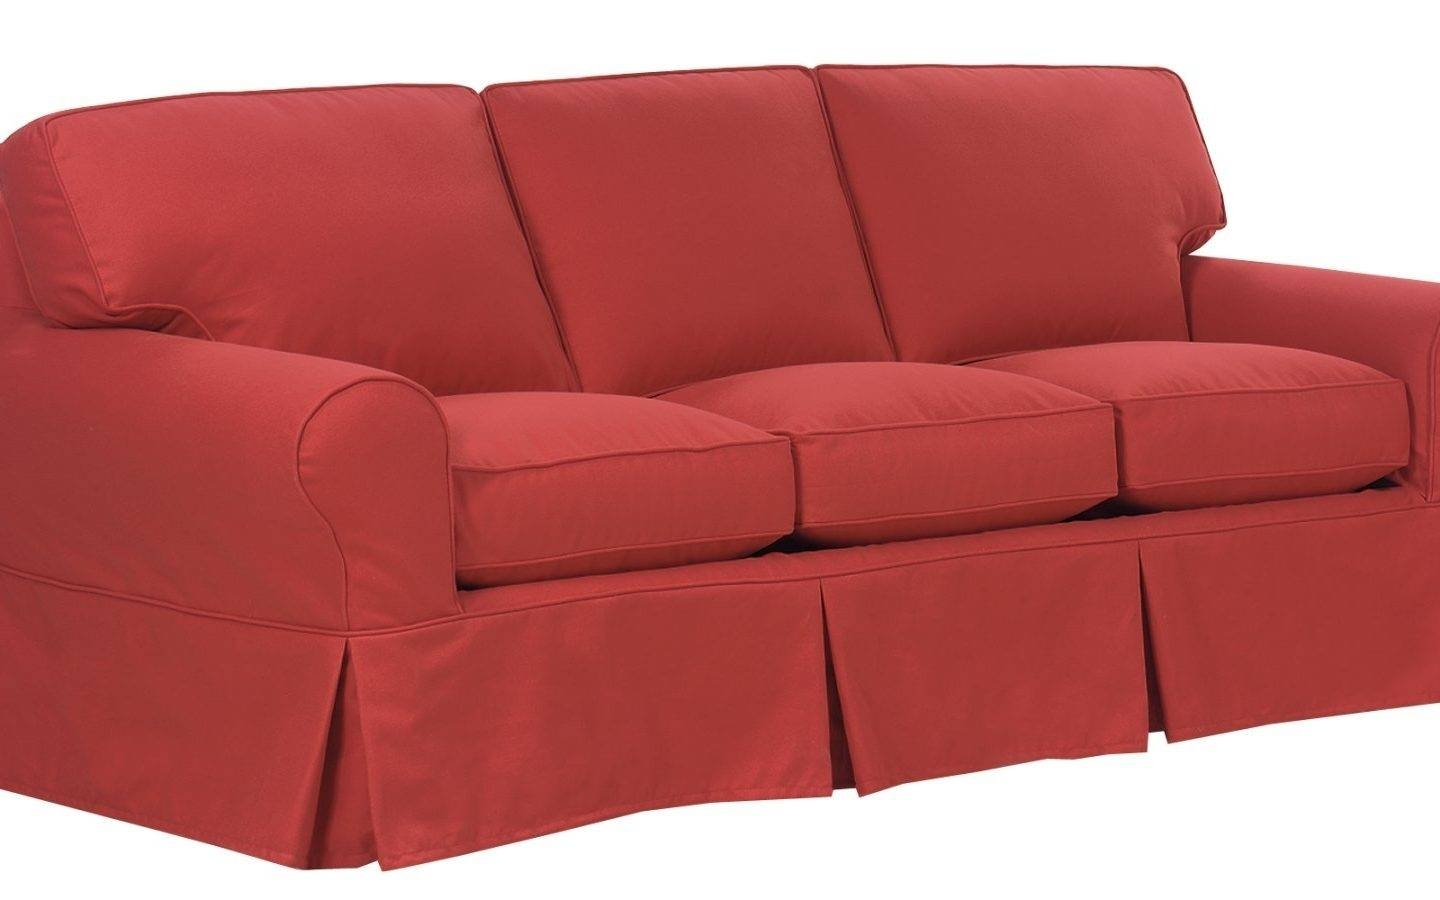 Beautiful Sleeper Sofa Slipcover 28 In Sofas And Couches Set With for Slipcovers For Sleeper Sofas (Image 1 of 15)